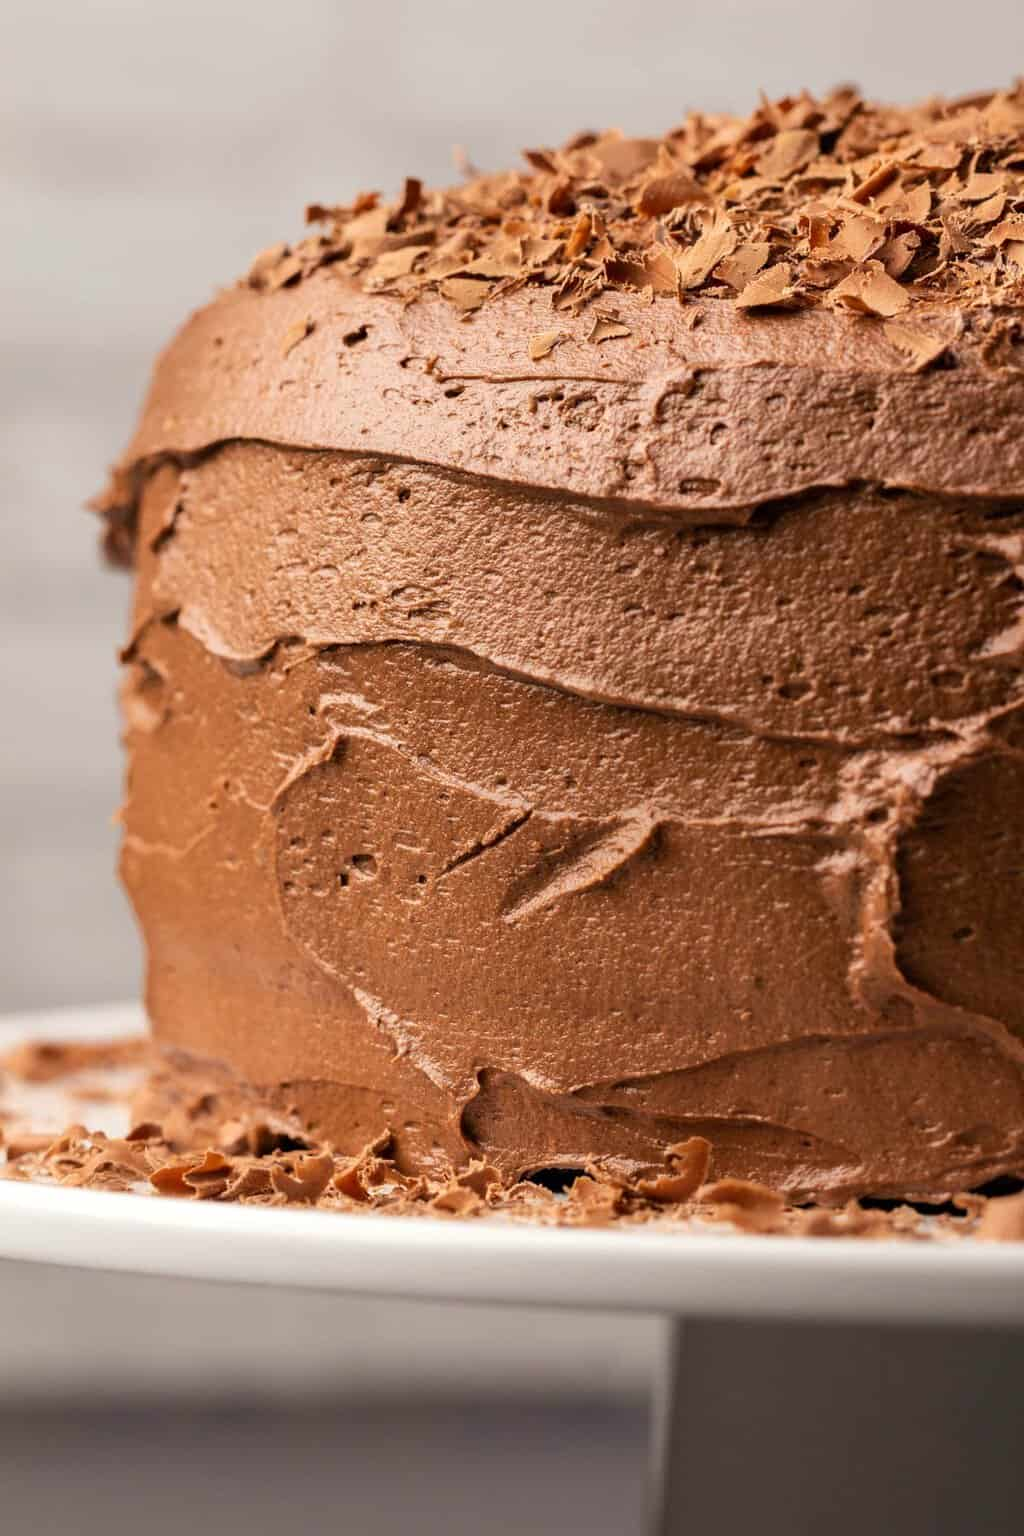 Vegan chocolate buttercream frosting spread onto a chocolate cake.